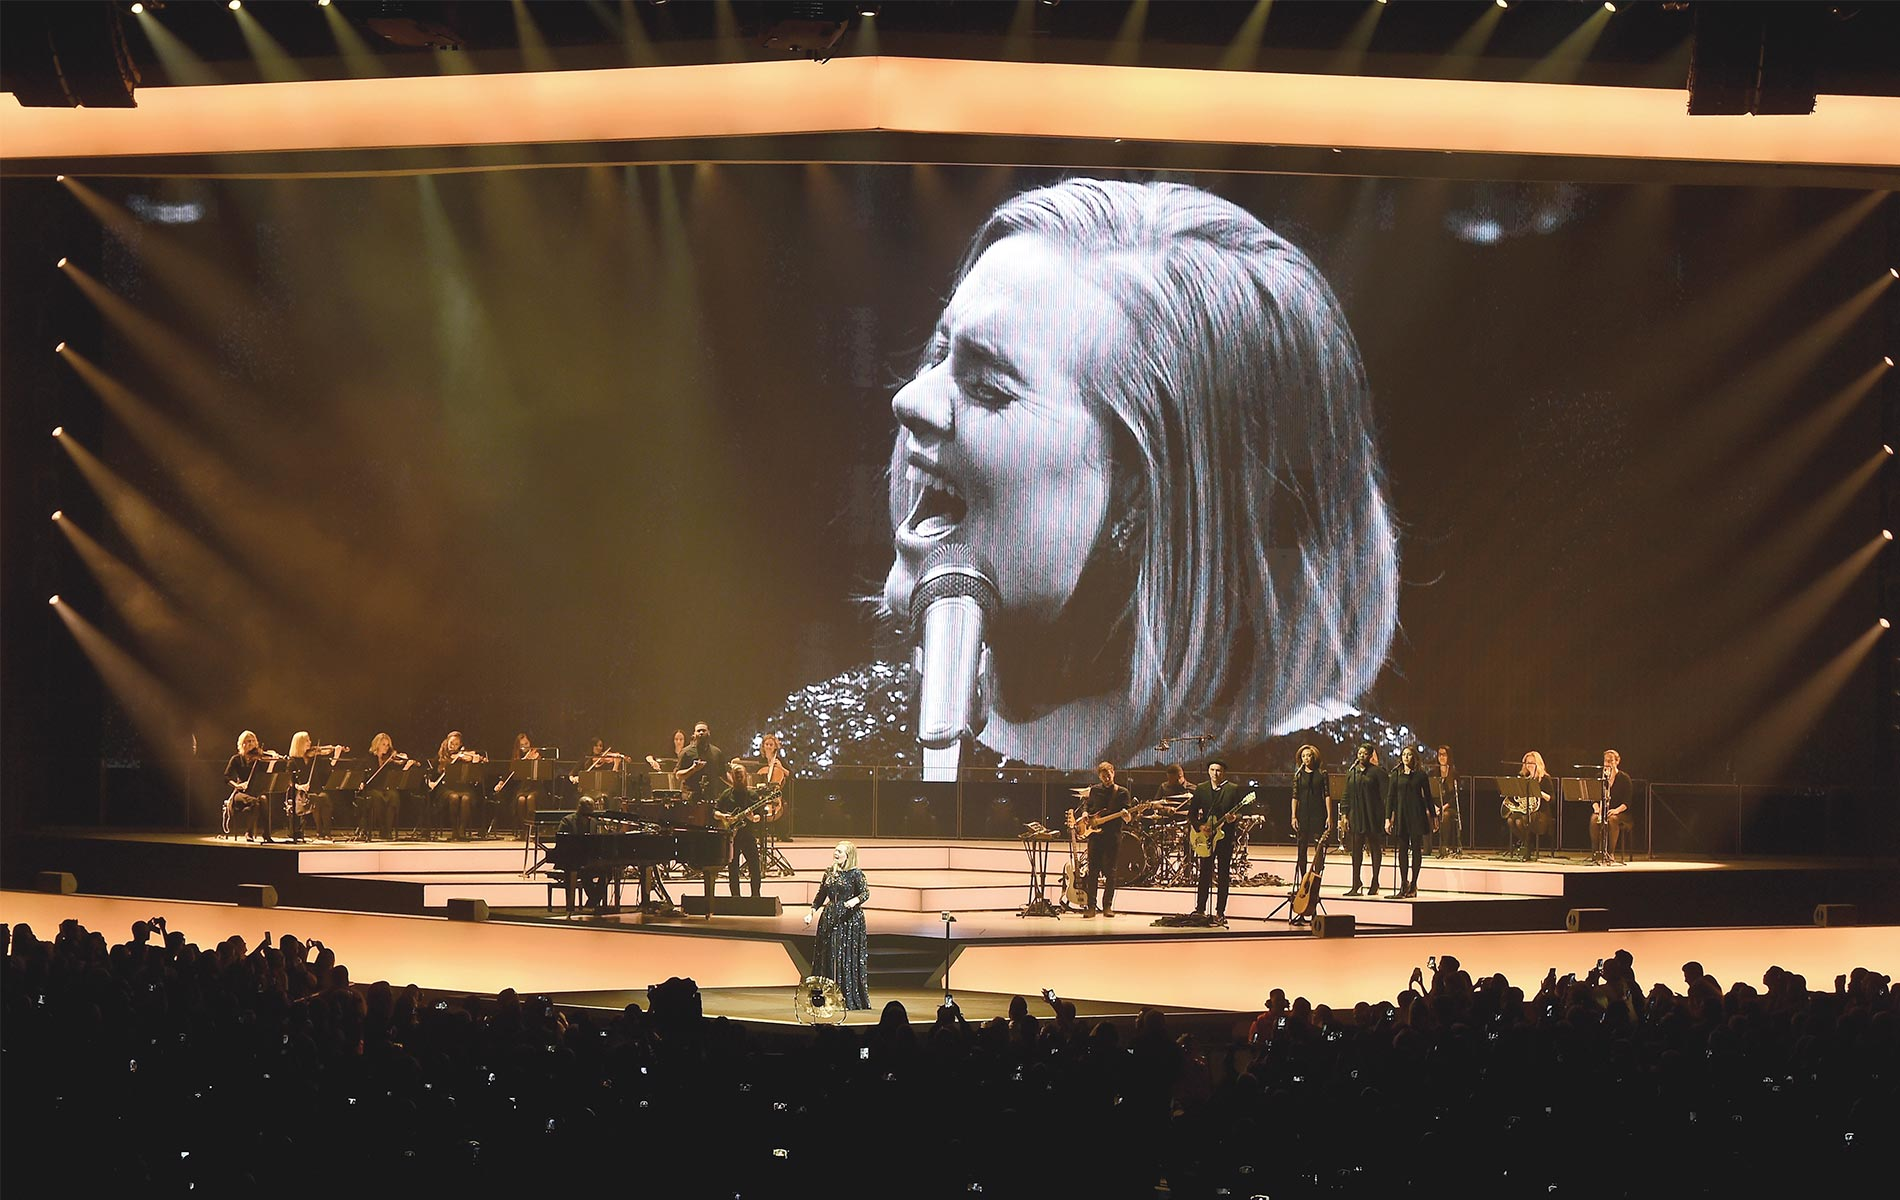 Adele performing at the Staples Center in Los Angeles Photo by Kevin Winter/Getty Images